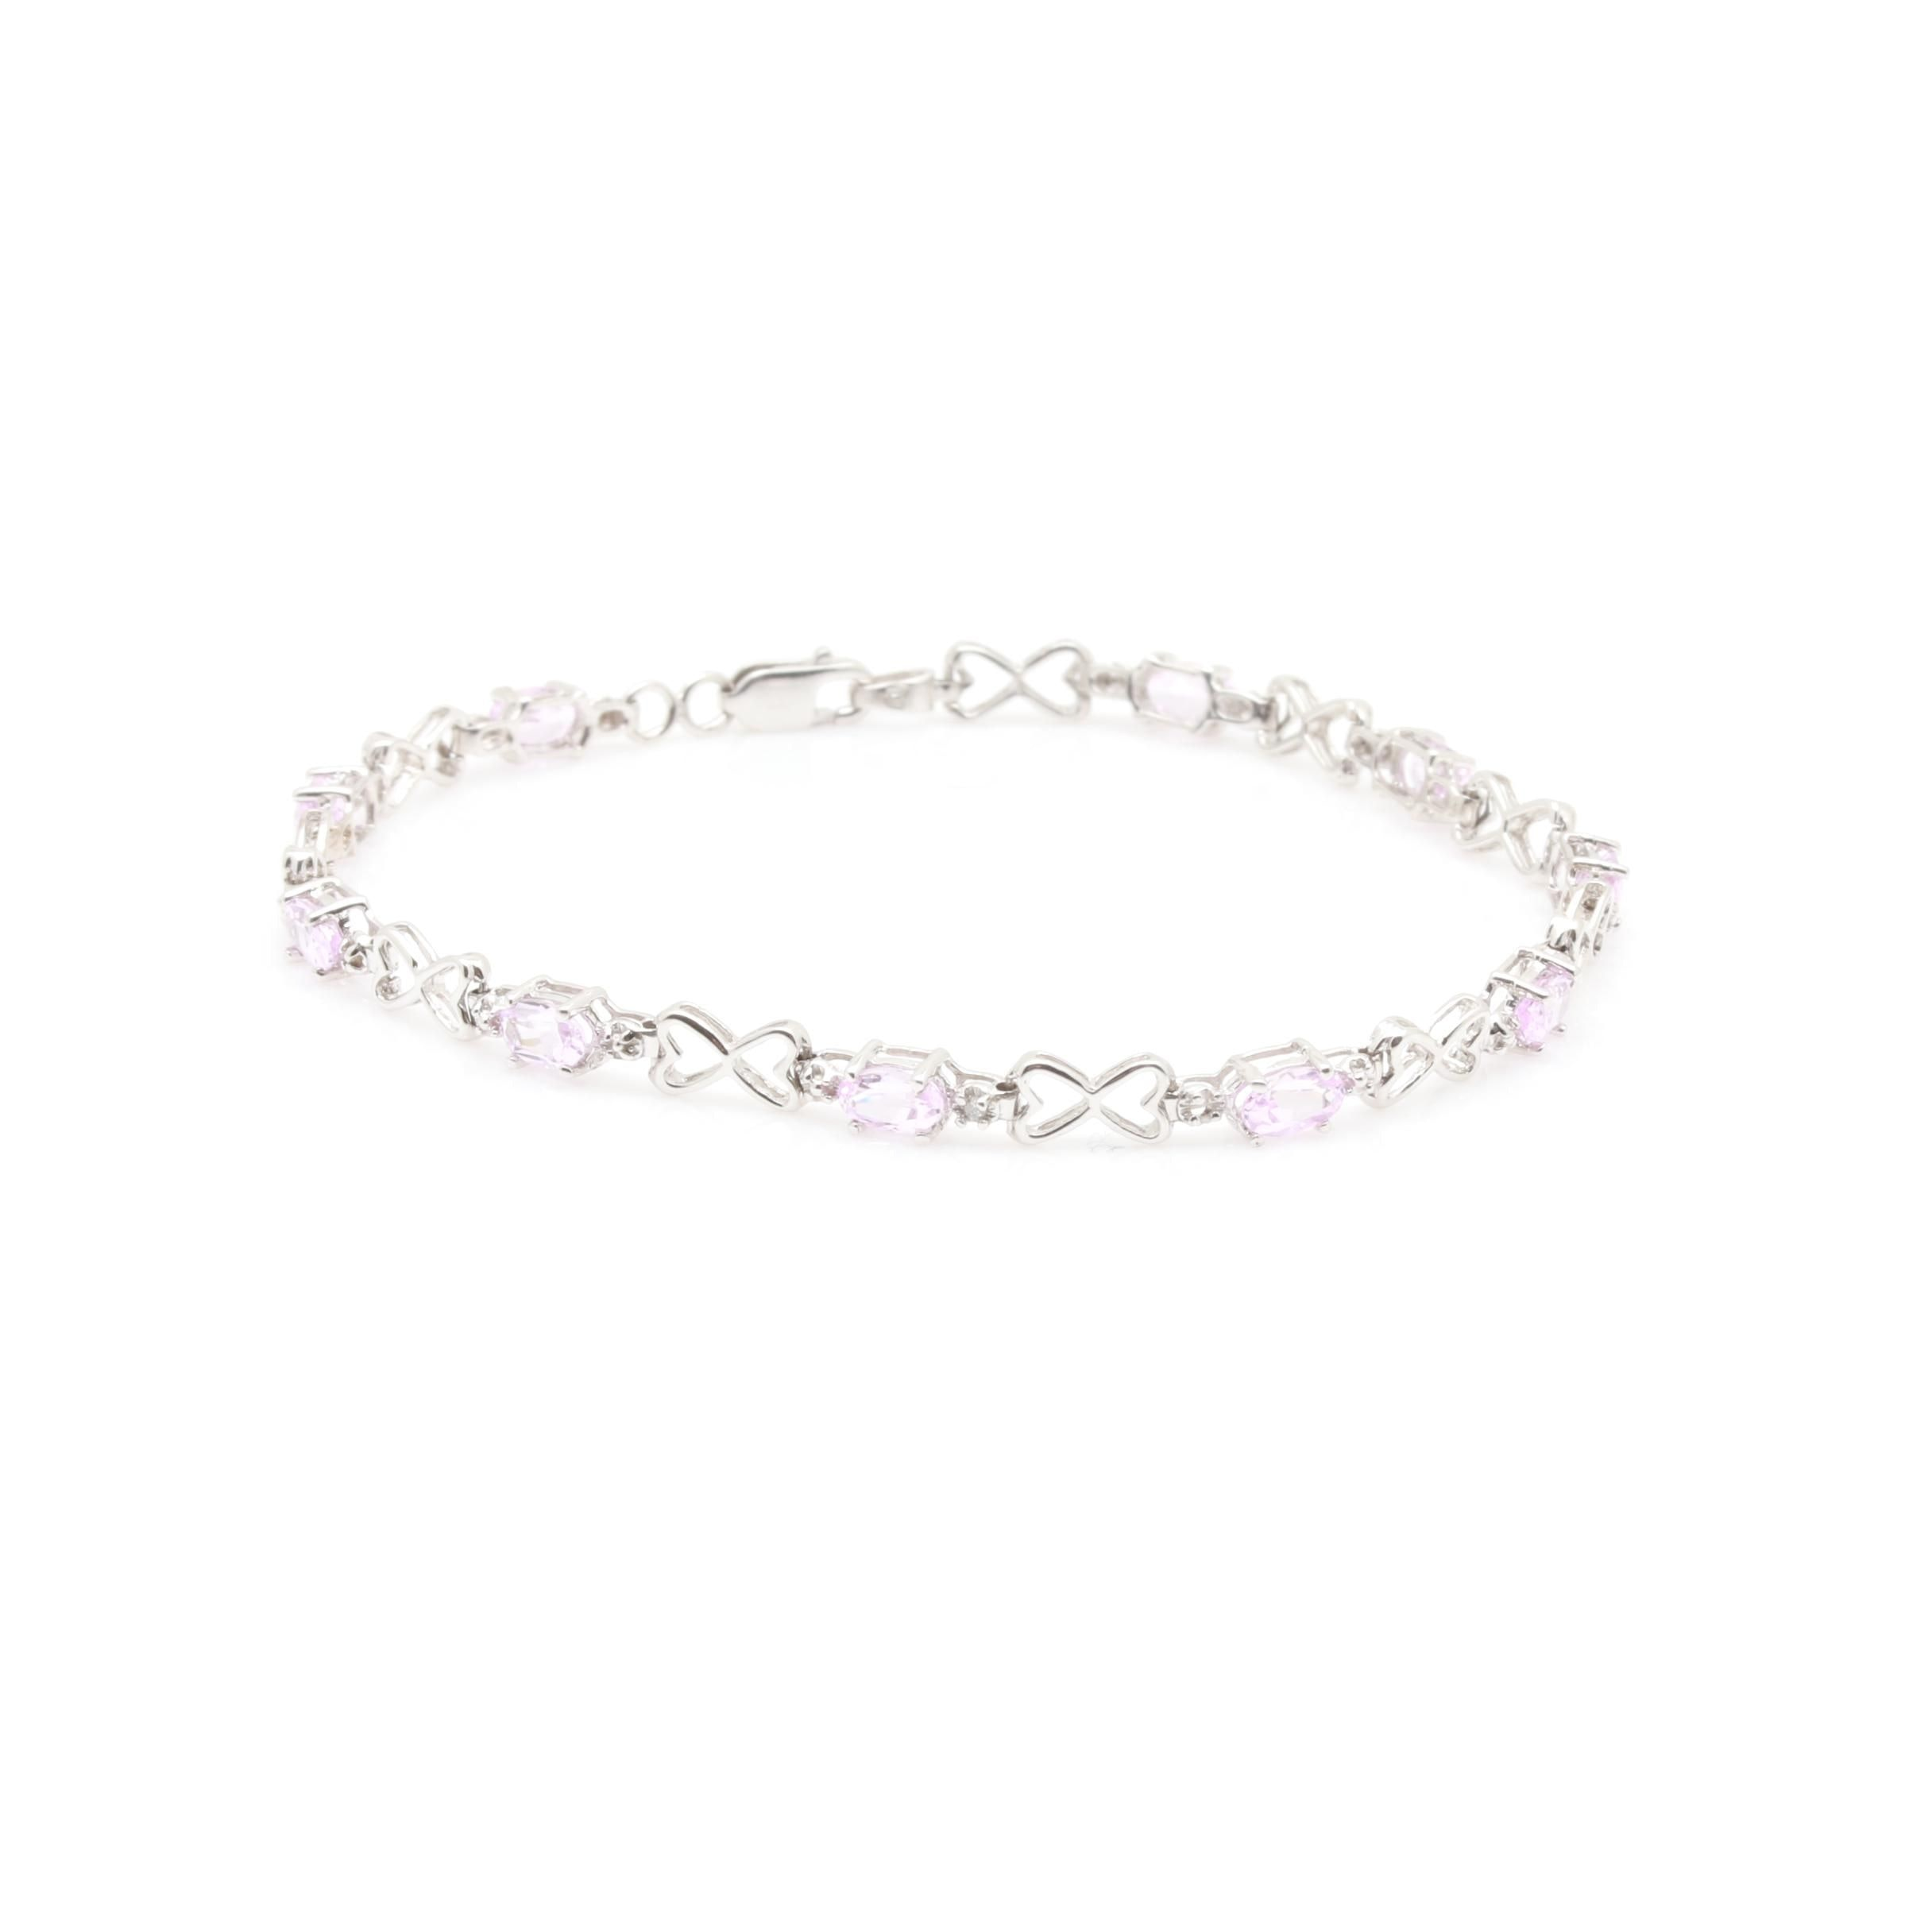 10K White Gold Synthetic Pink Sapphire and Diamond Bracelet